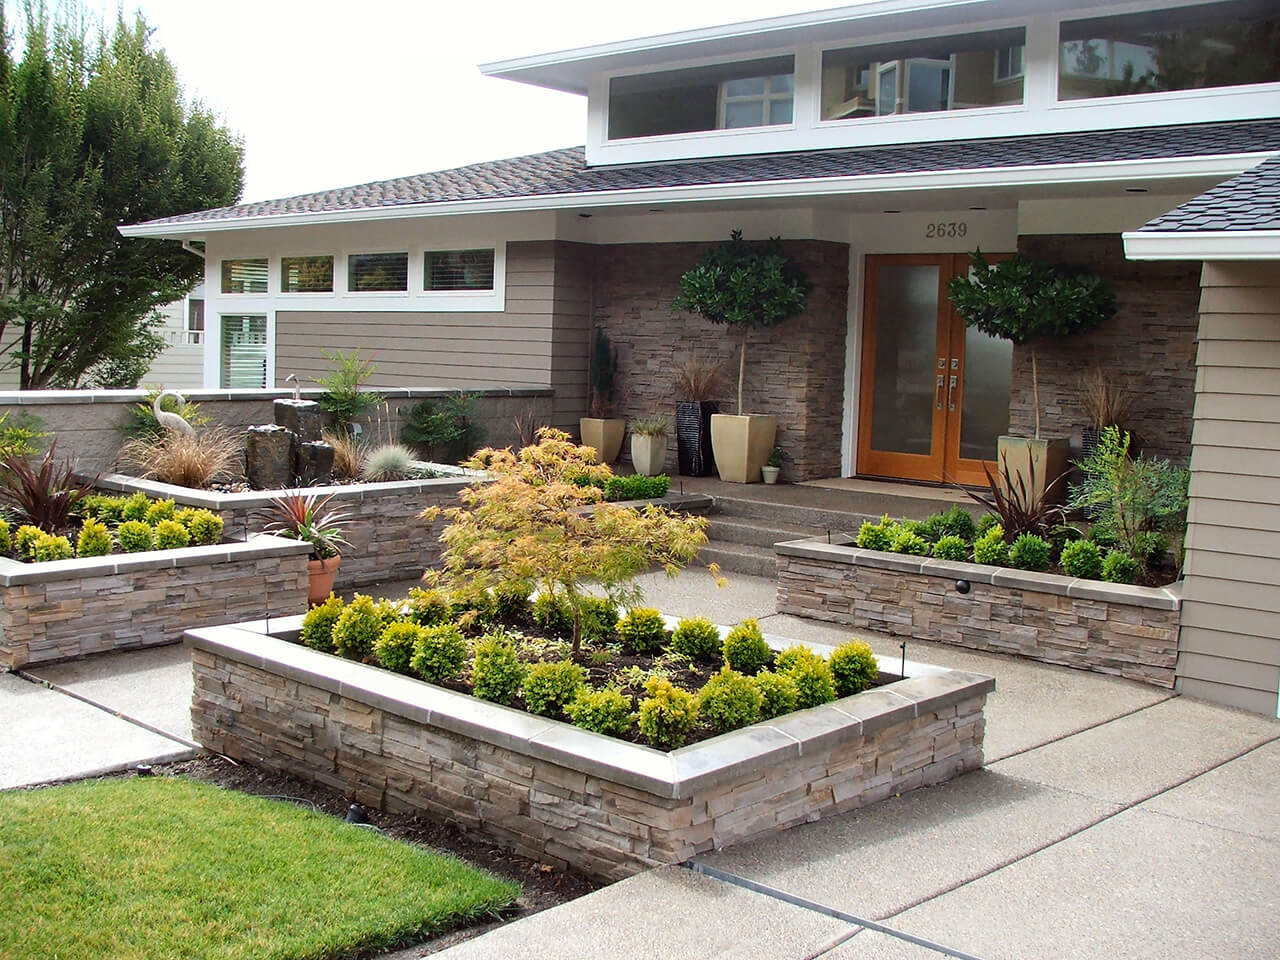 20 brilliant front garden landscaping ideas style motivation for Front garden design